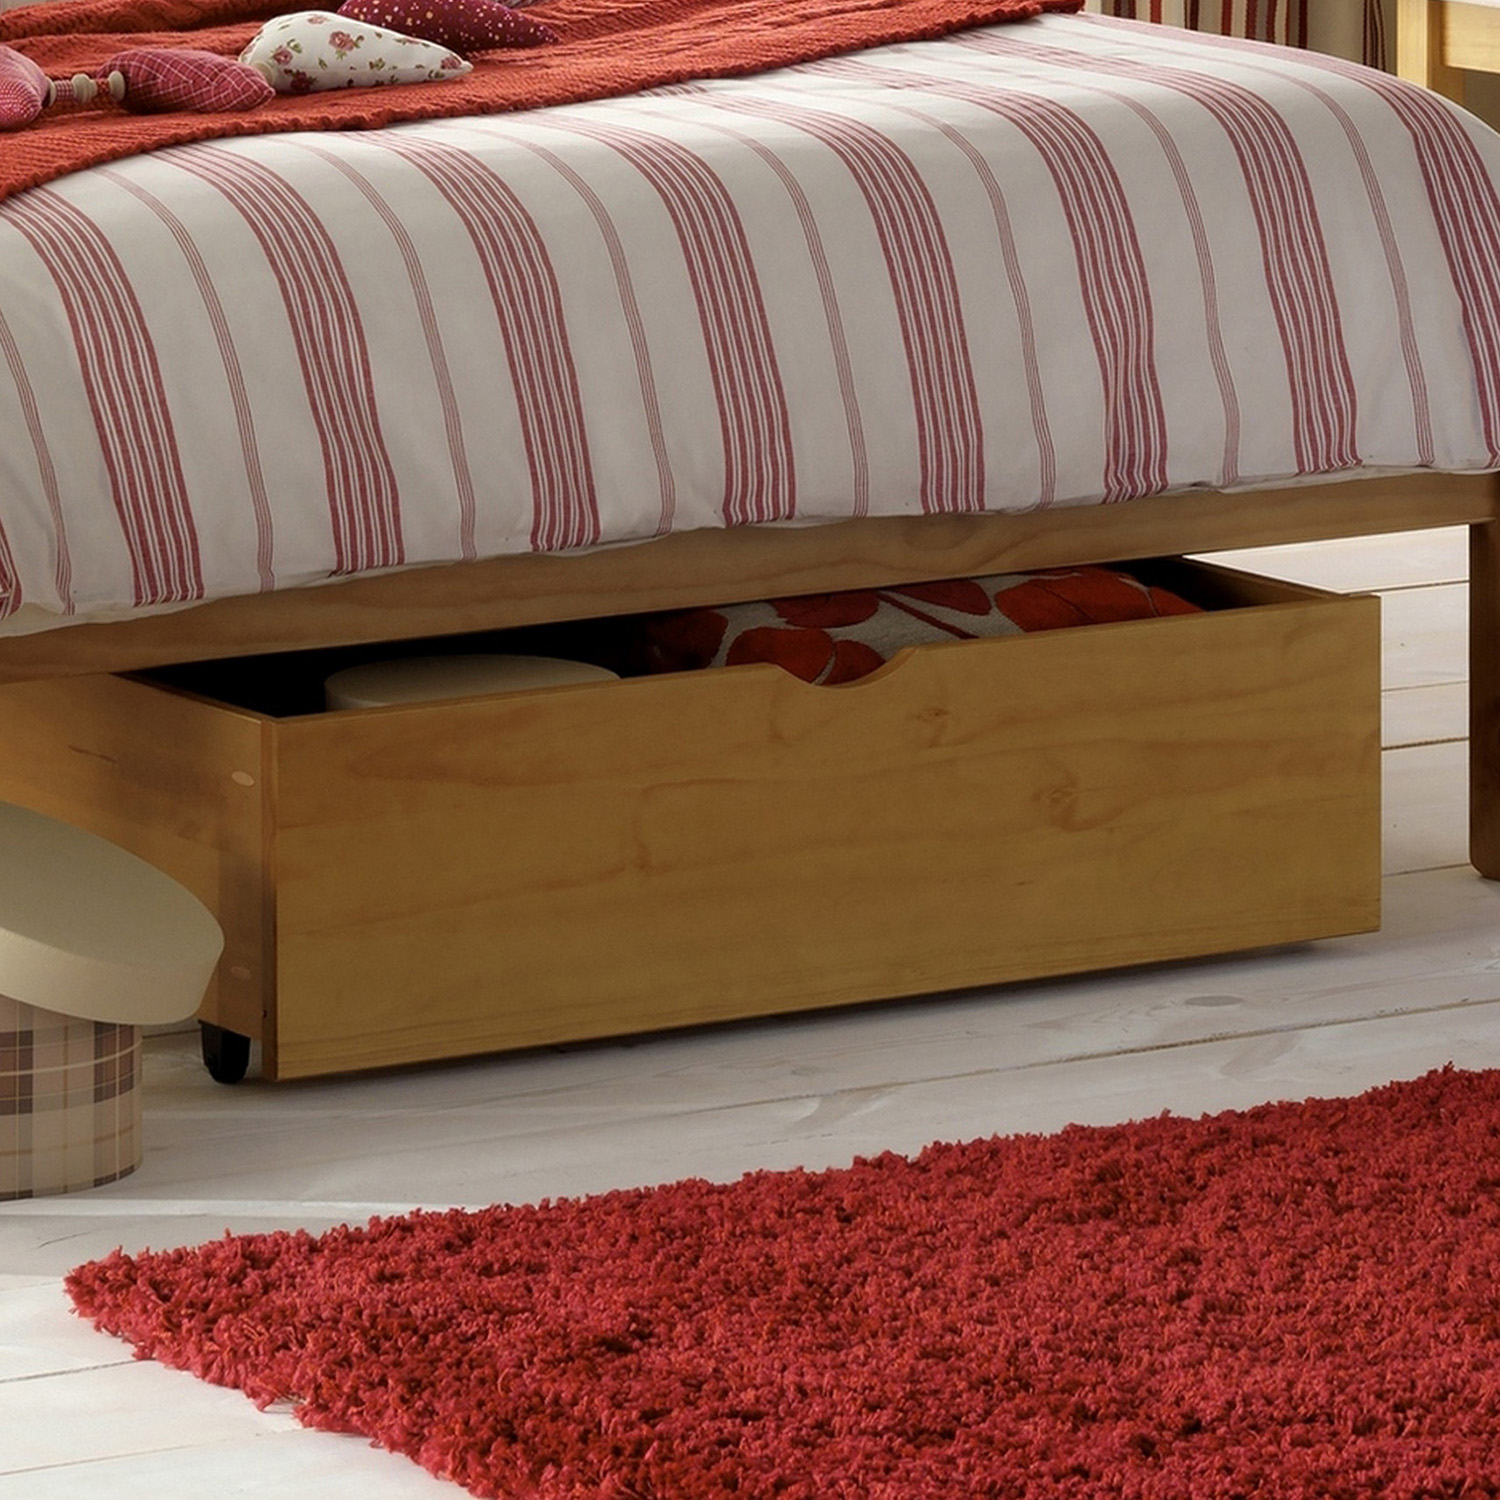 Picture of: Bed Storage Ideas Large